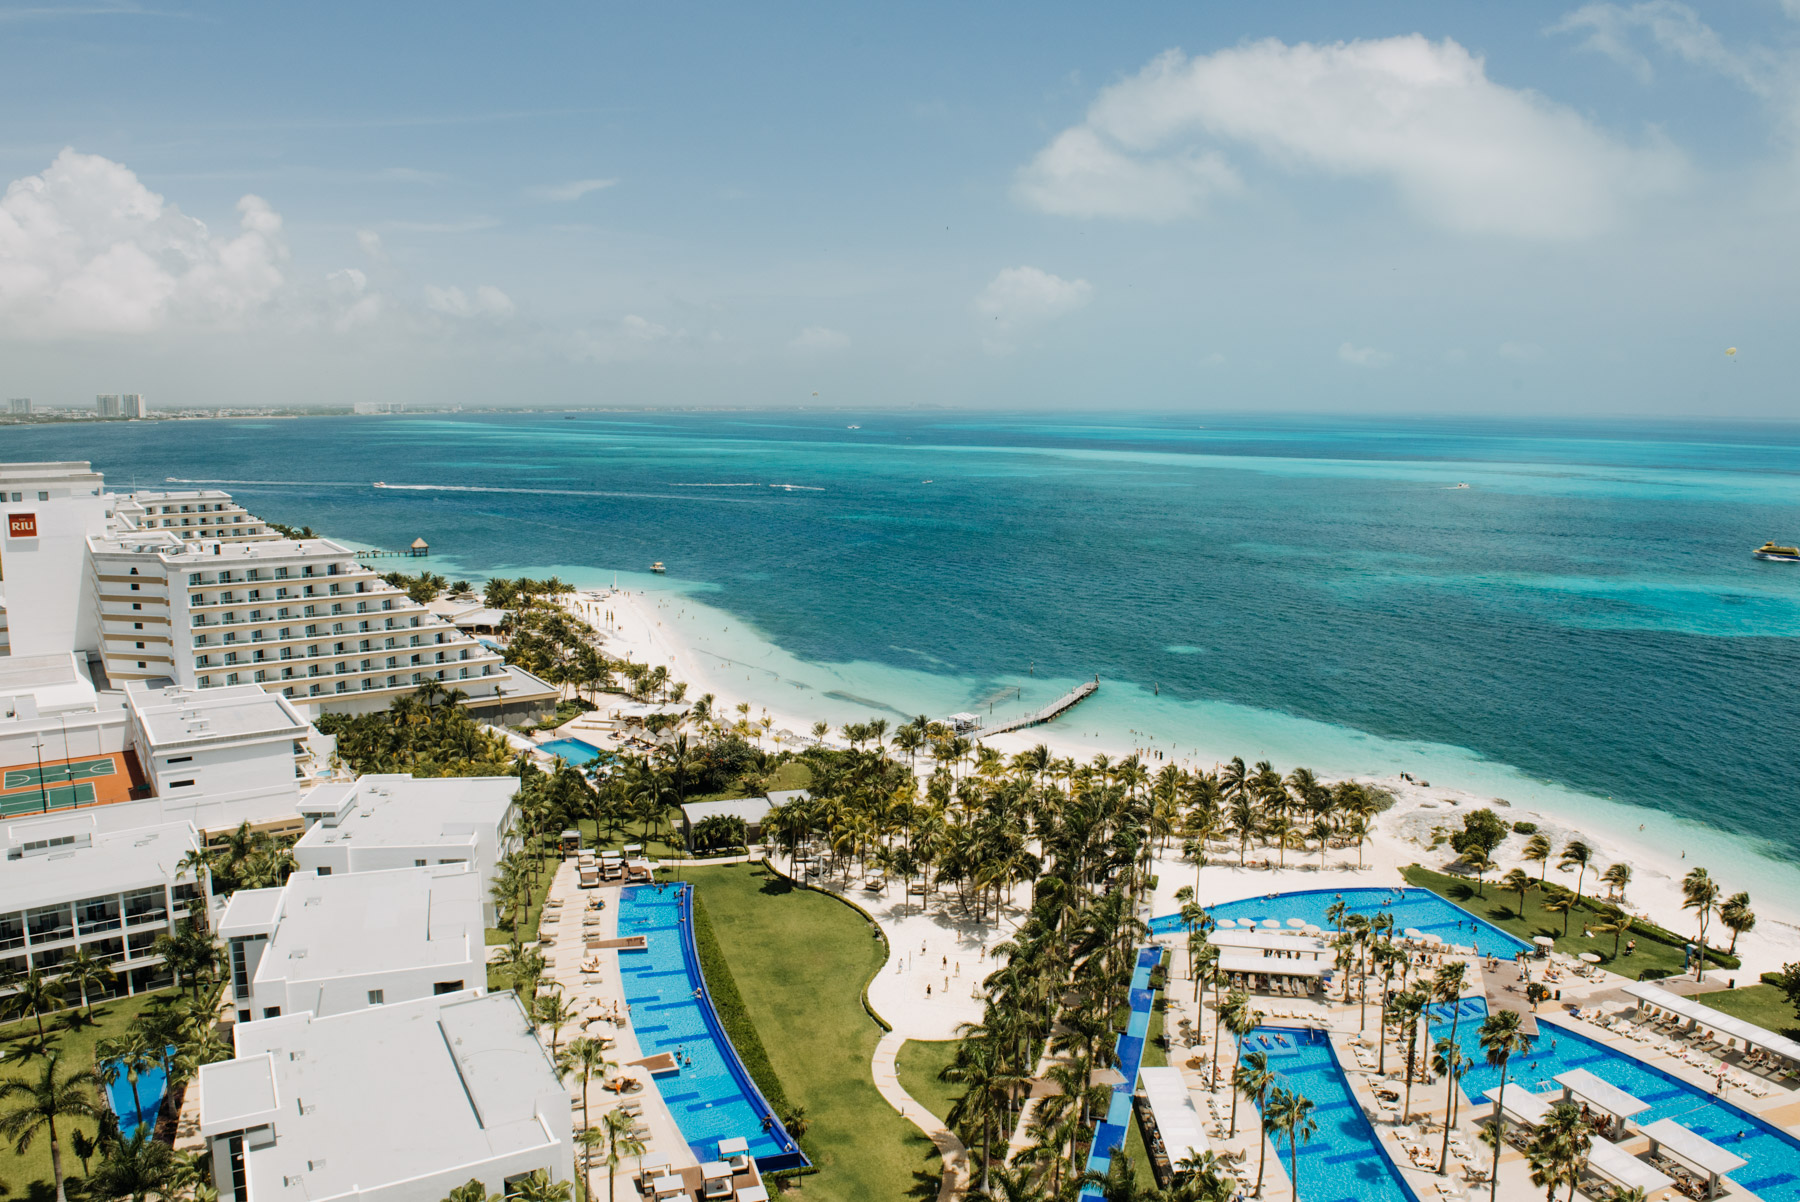 Here is the view from our room in Cancun, Mexico, on the day of Julia & Tony's Wedding. We had a blast capturing their destination elopement. All of their friends made us feel incredibly loved and welcome, like we had been friends for years. I love photographing destination weddings! Copyright: Teresa Woodhull Photography